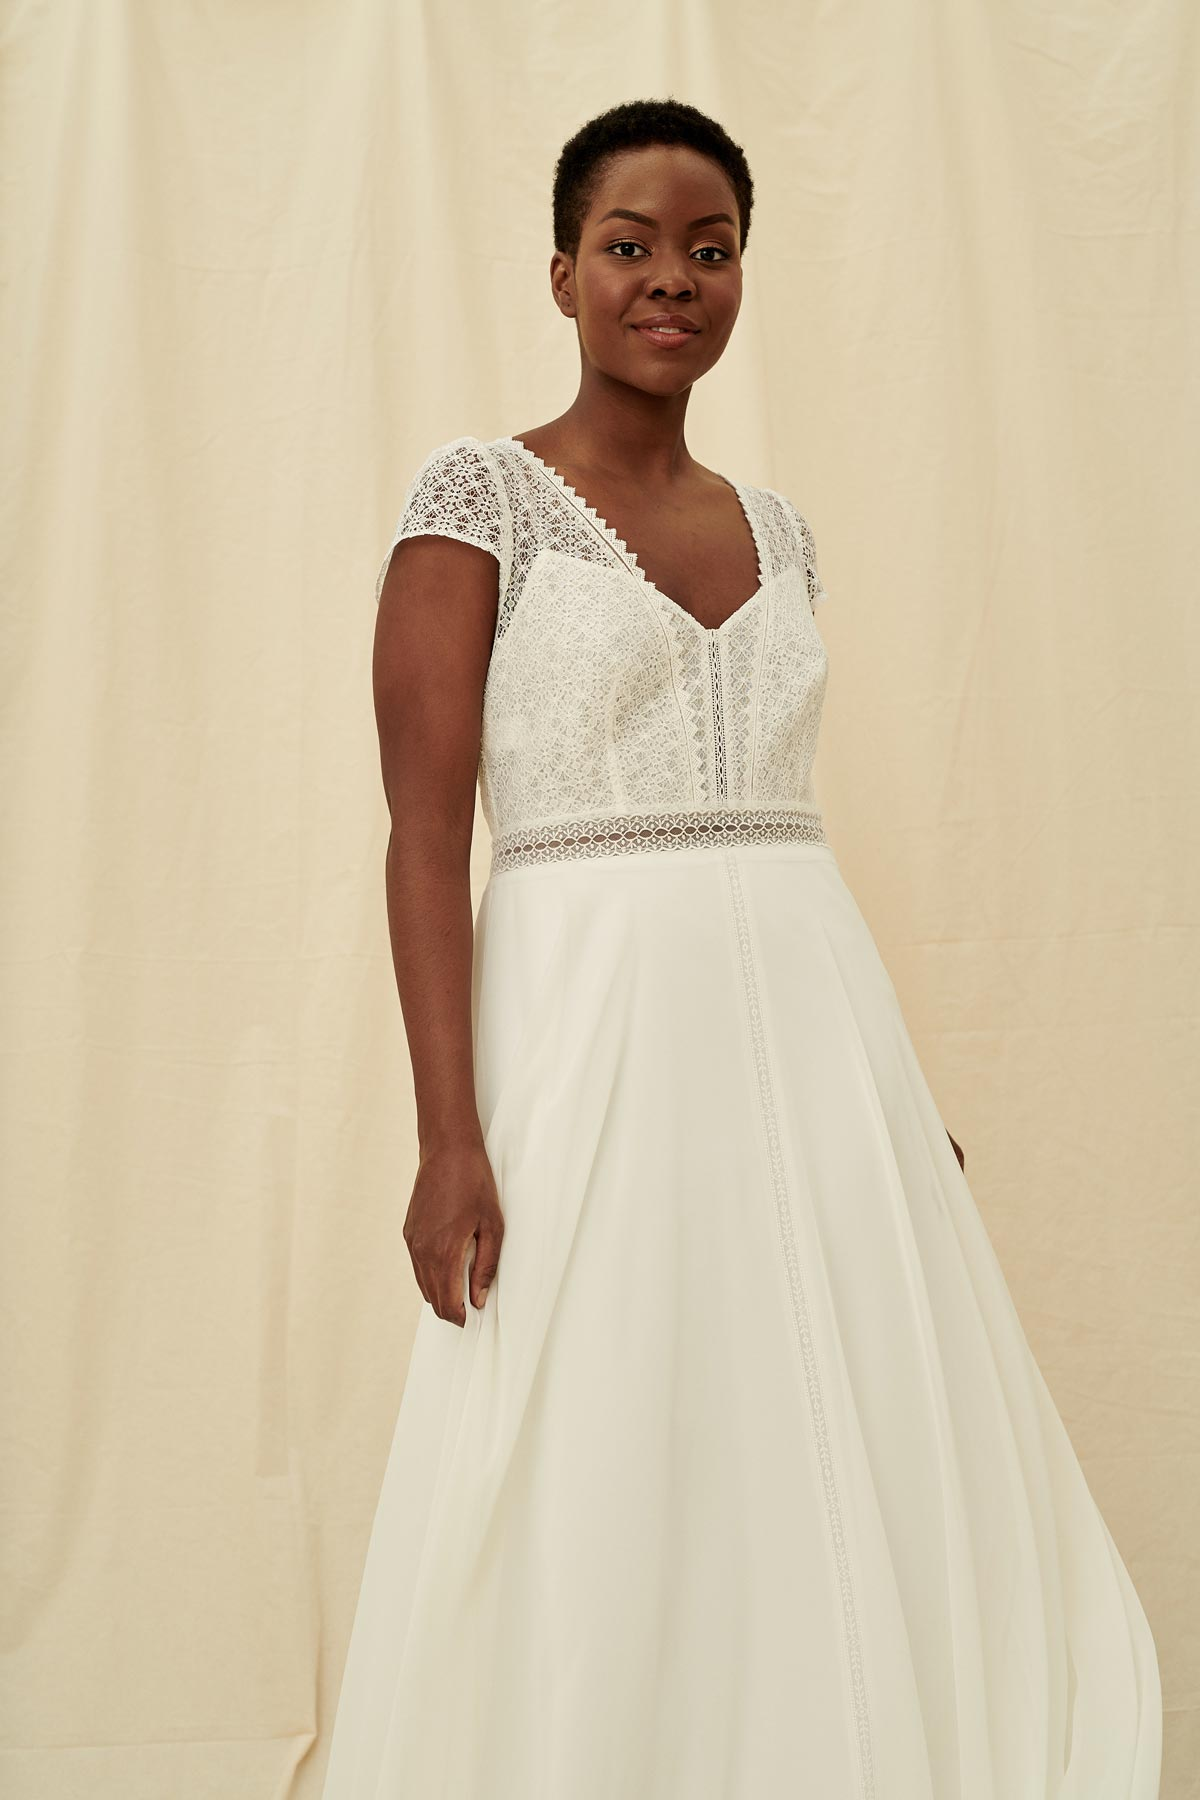 A unique wedding gown featuring a sweetheart bodice with a short sleeve t-shirt lace overlay, keyhole back, and lace waist panel.